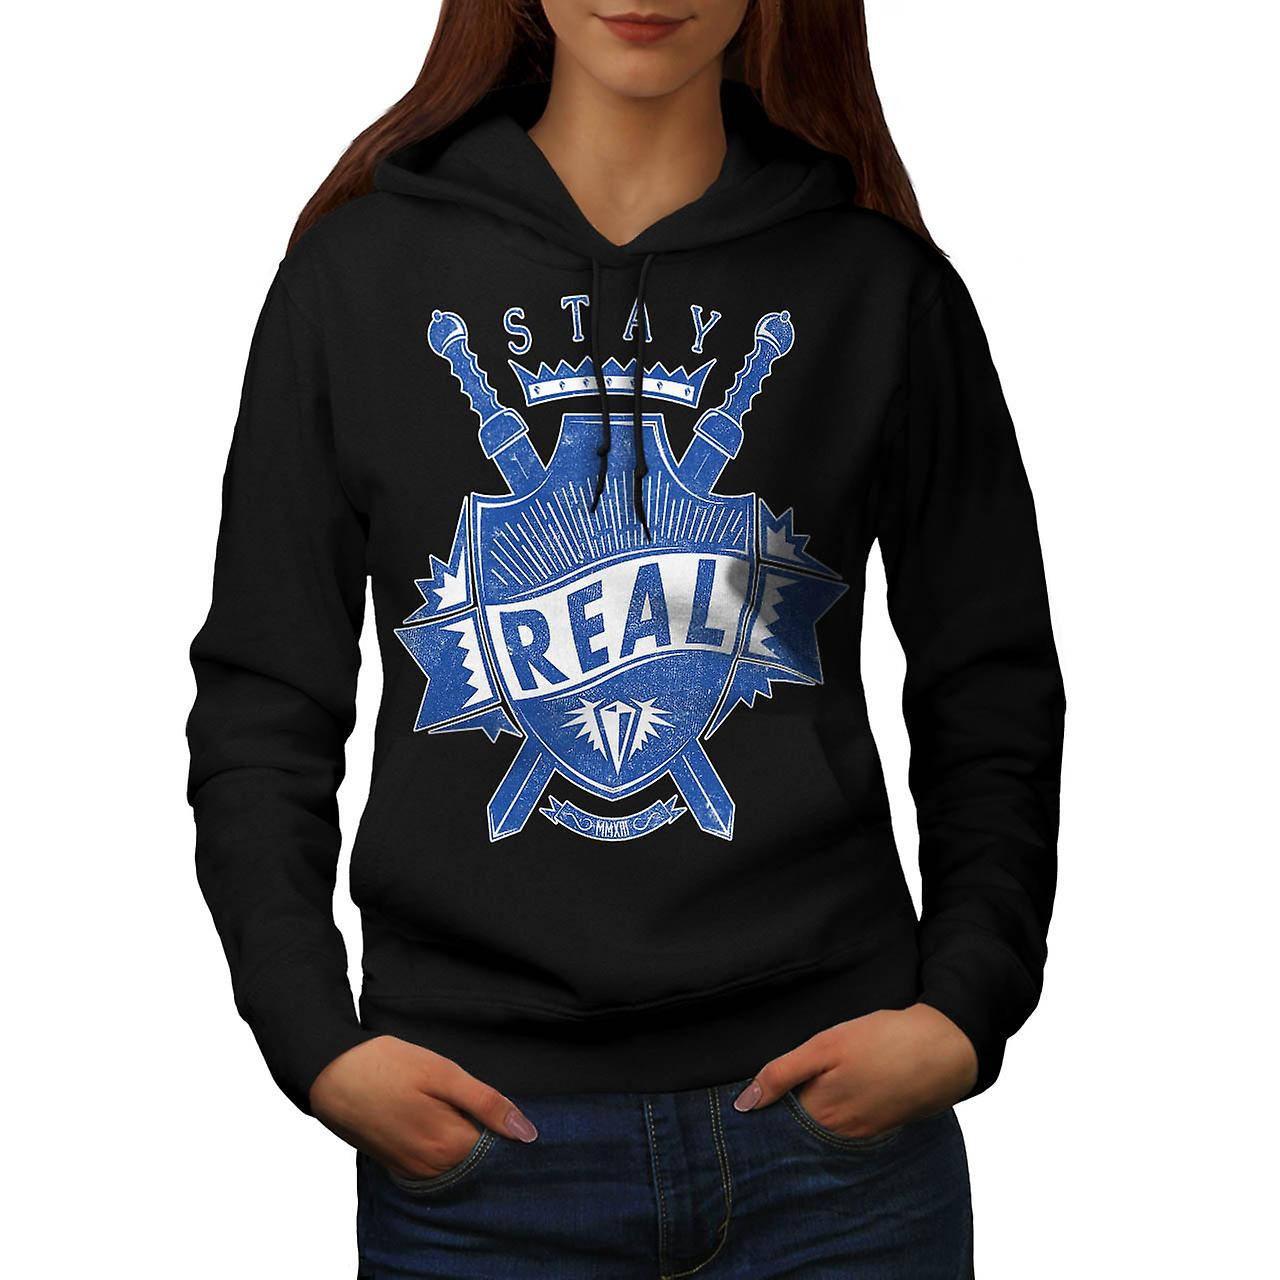 Stay Real Ambition Sword Shield Women Black Hoodie | Wellcoda